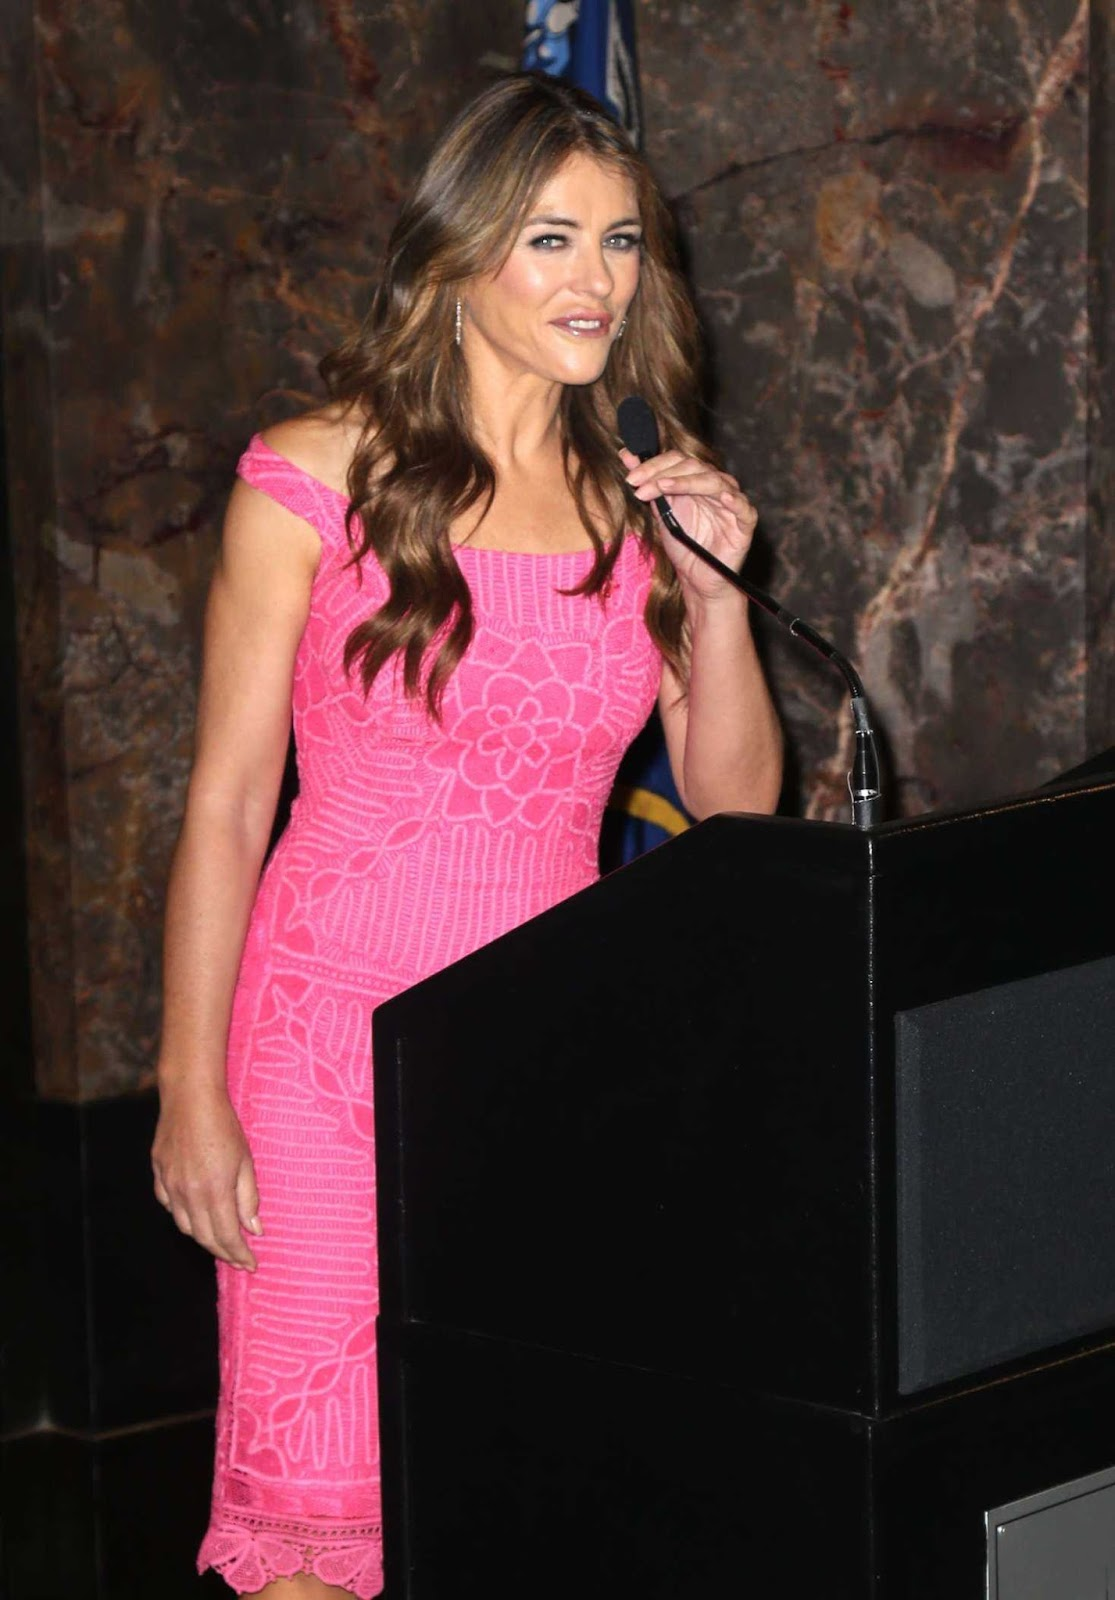 Elizabeth Hurley Looks Hot in Pink Outfit